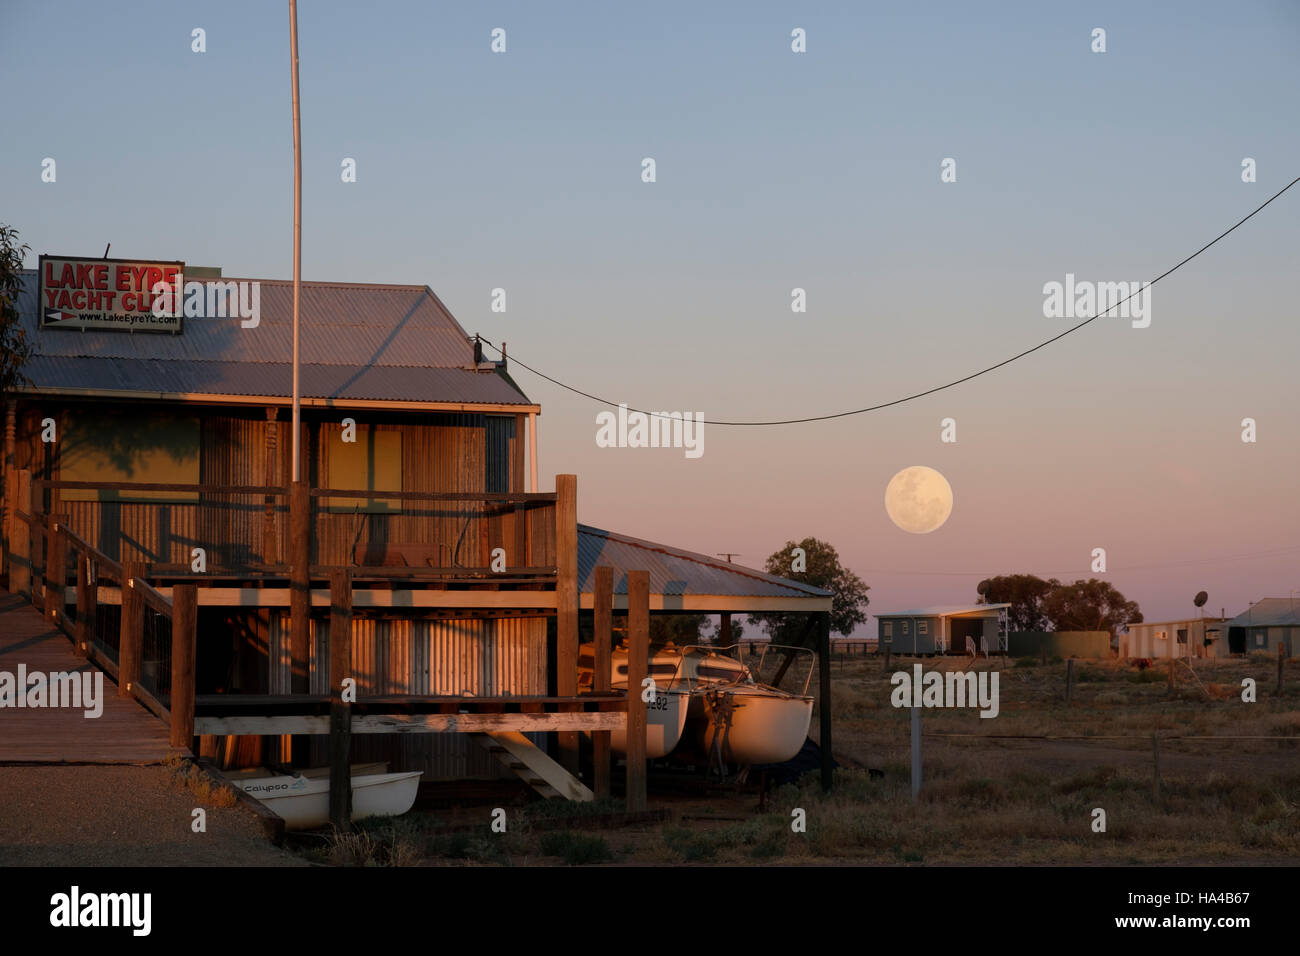 A super moon rises near the Lake Eyre Yacht Club at Marree in Outback Australia - Stock Image